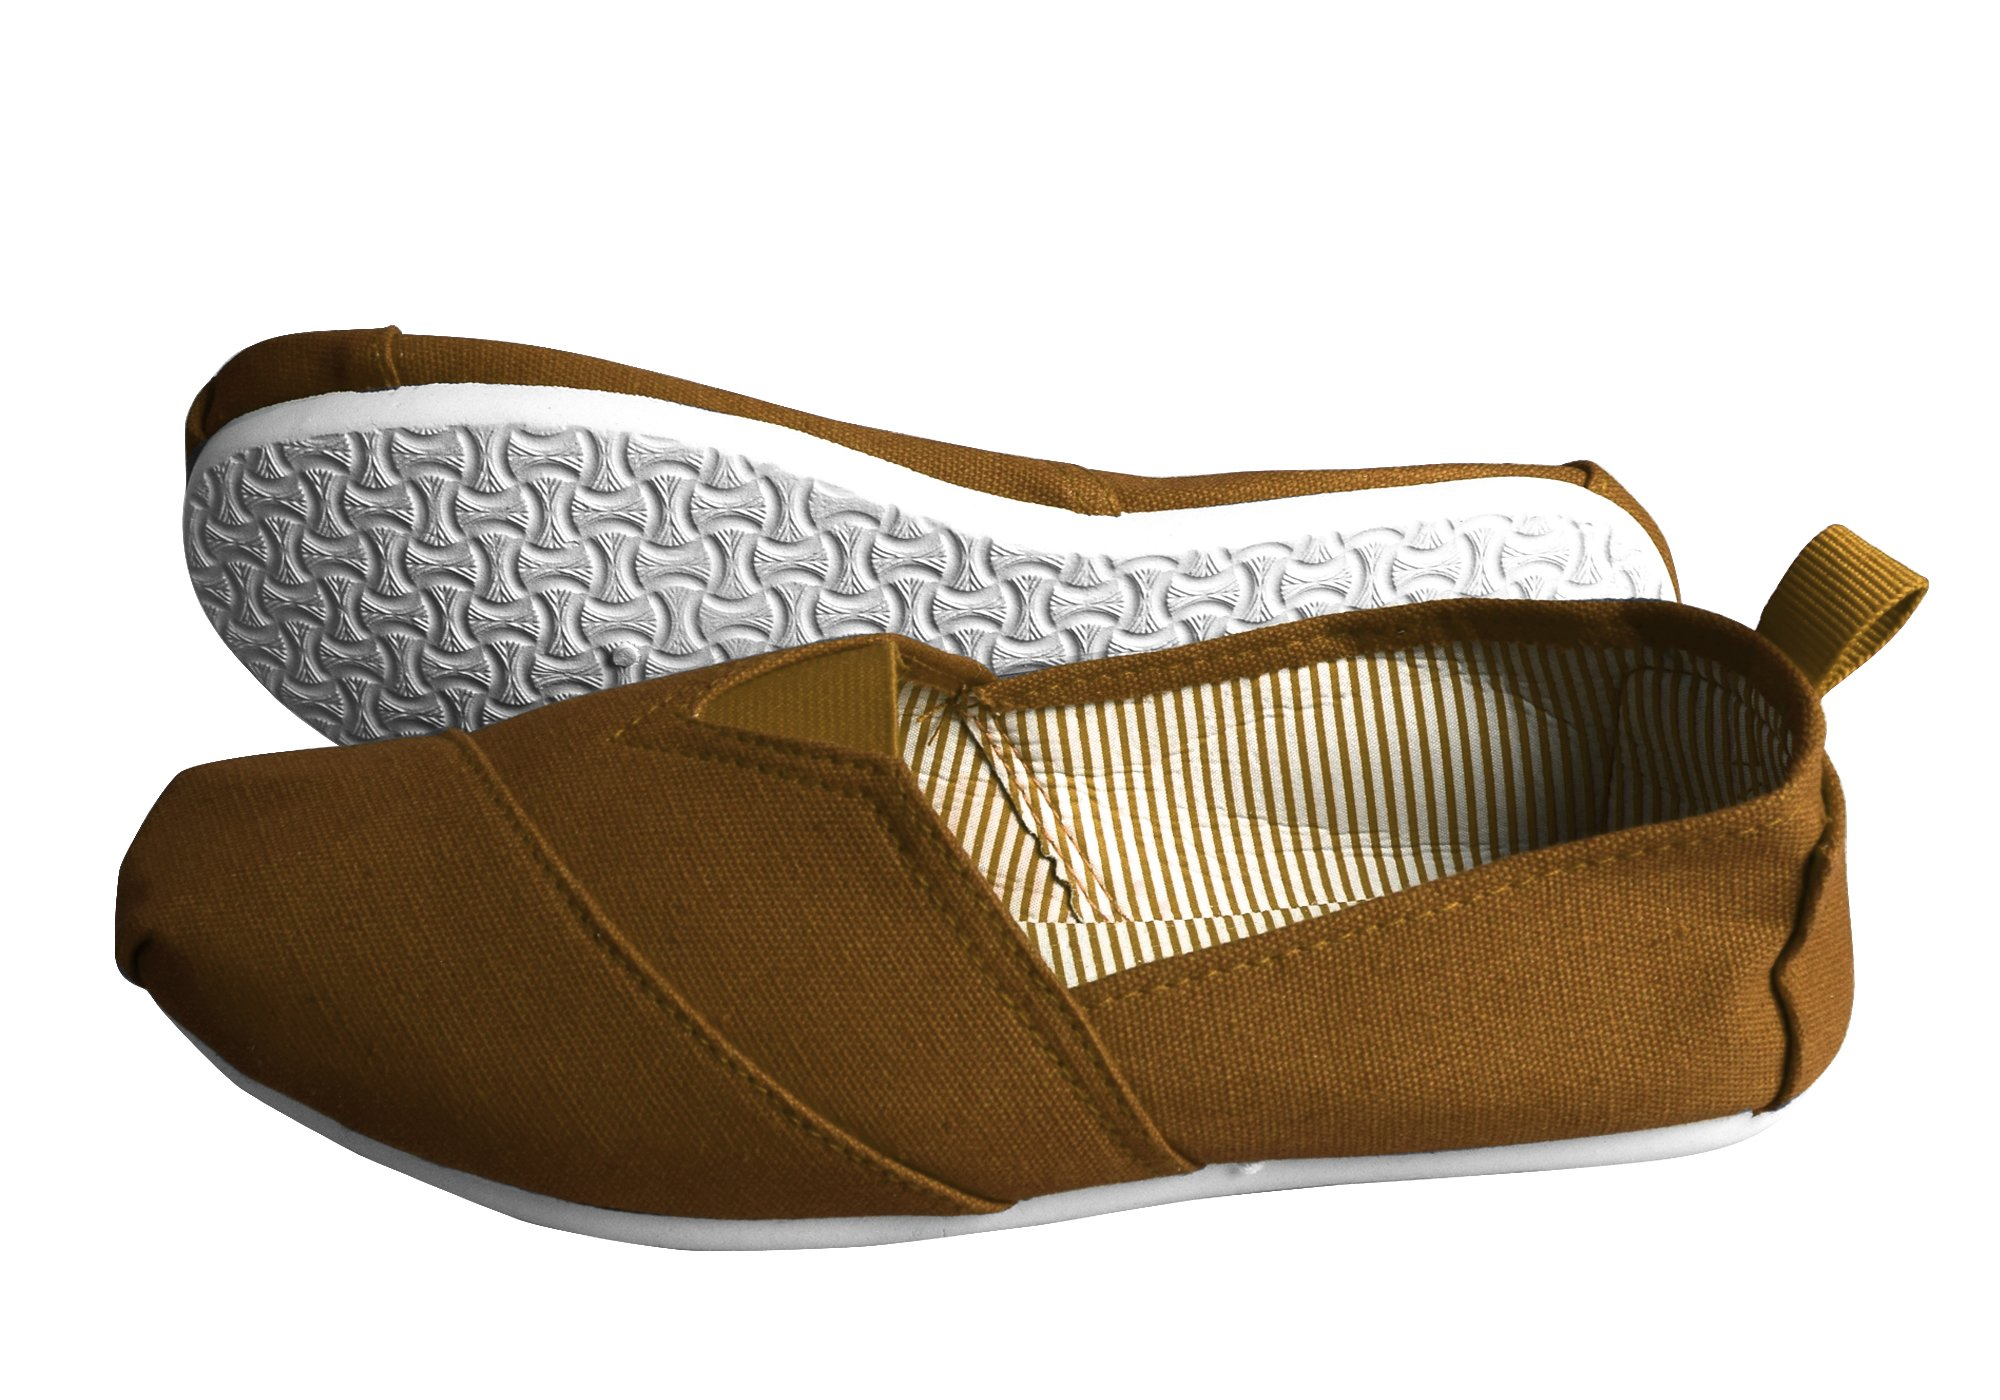 Peach Couture Striped Casual Summer Breathable Tennis Slip On Loafer Sneaker Shoes Brown 7